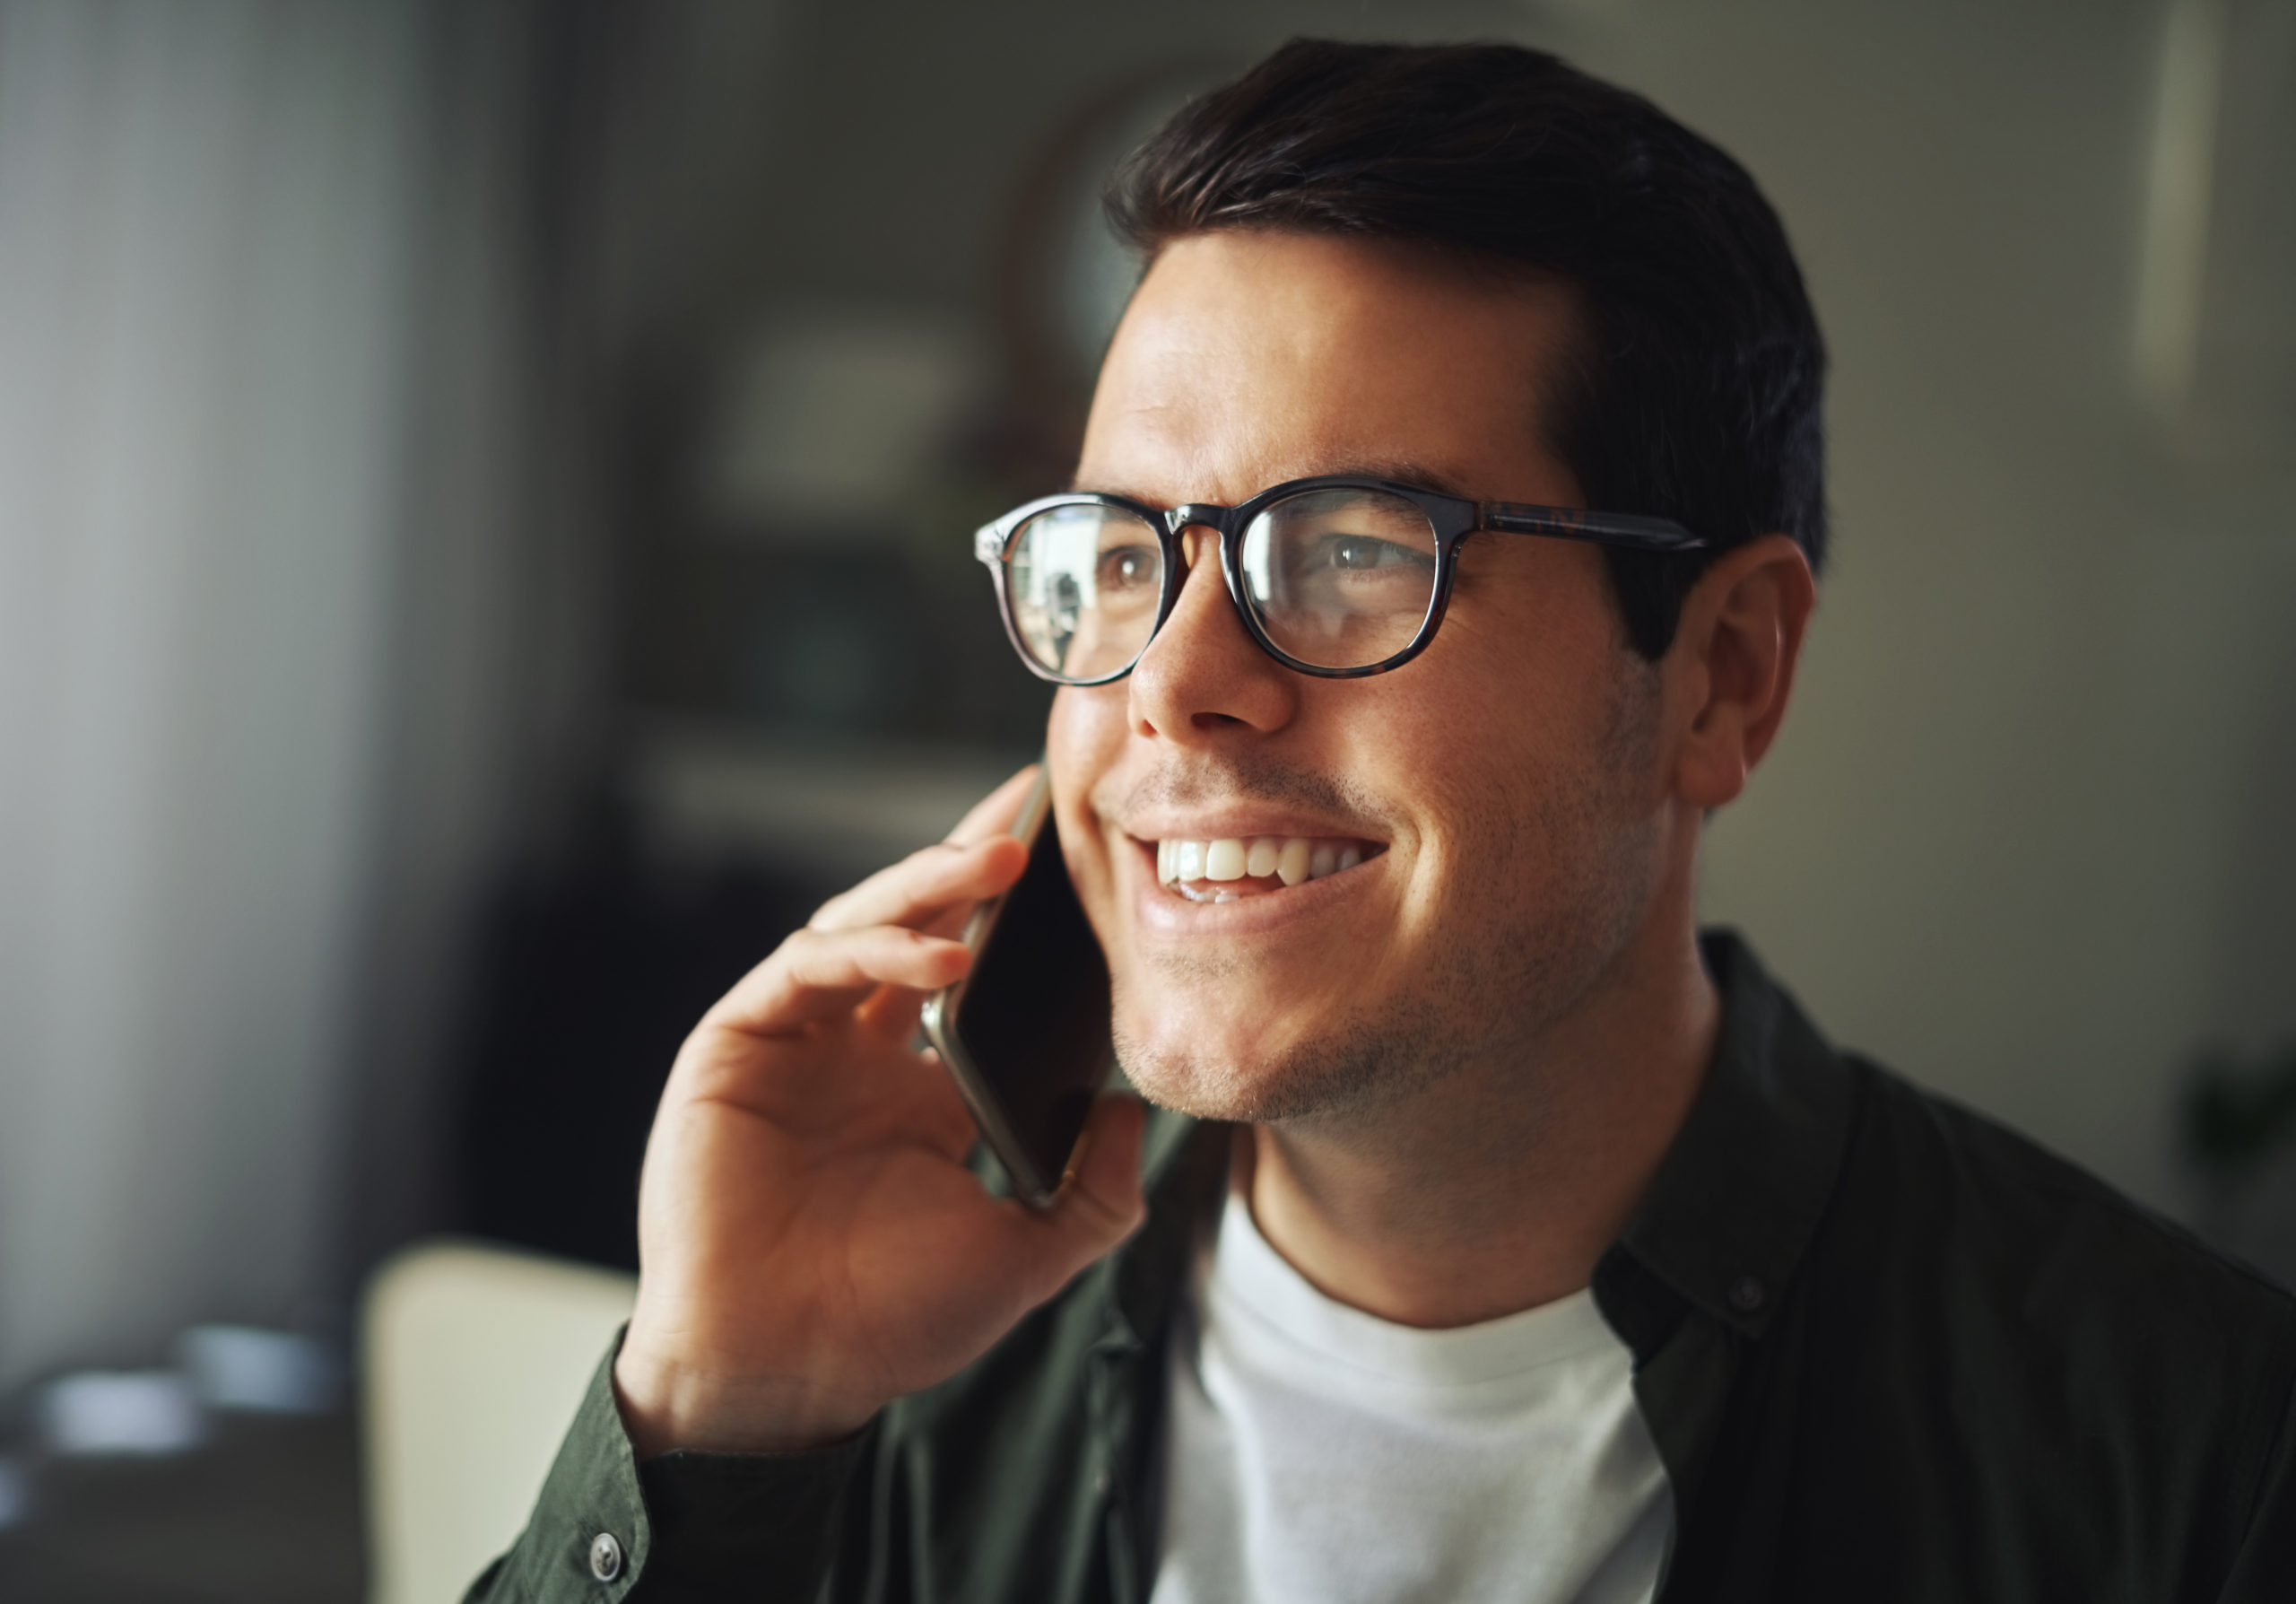 Smiling handsome man wearing black eyeglasses talking on a mobile phone